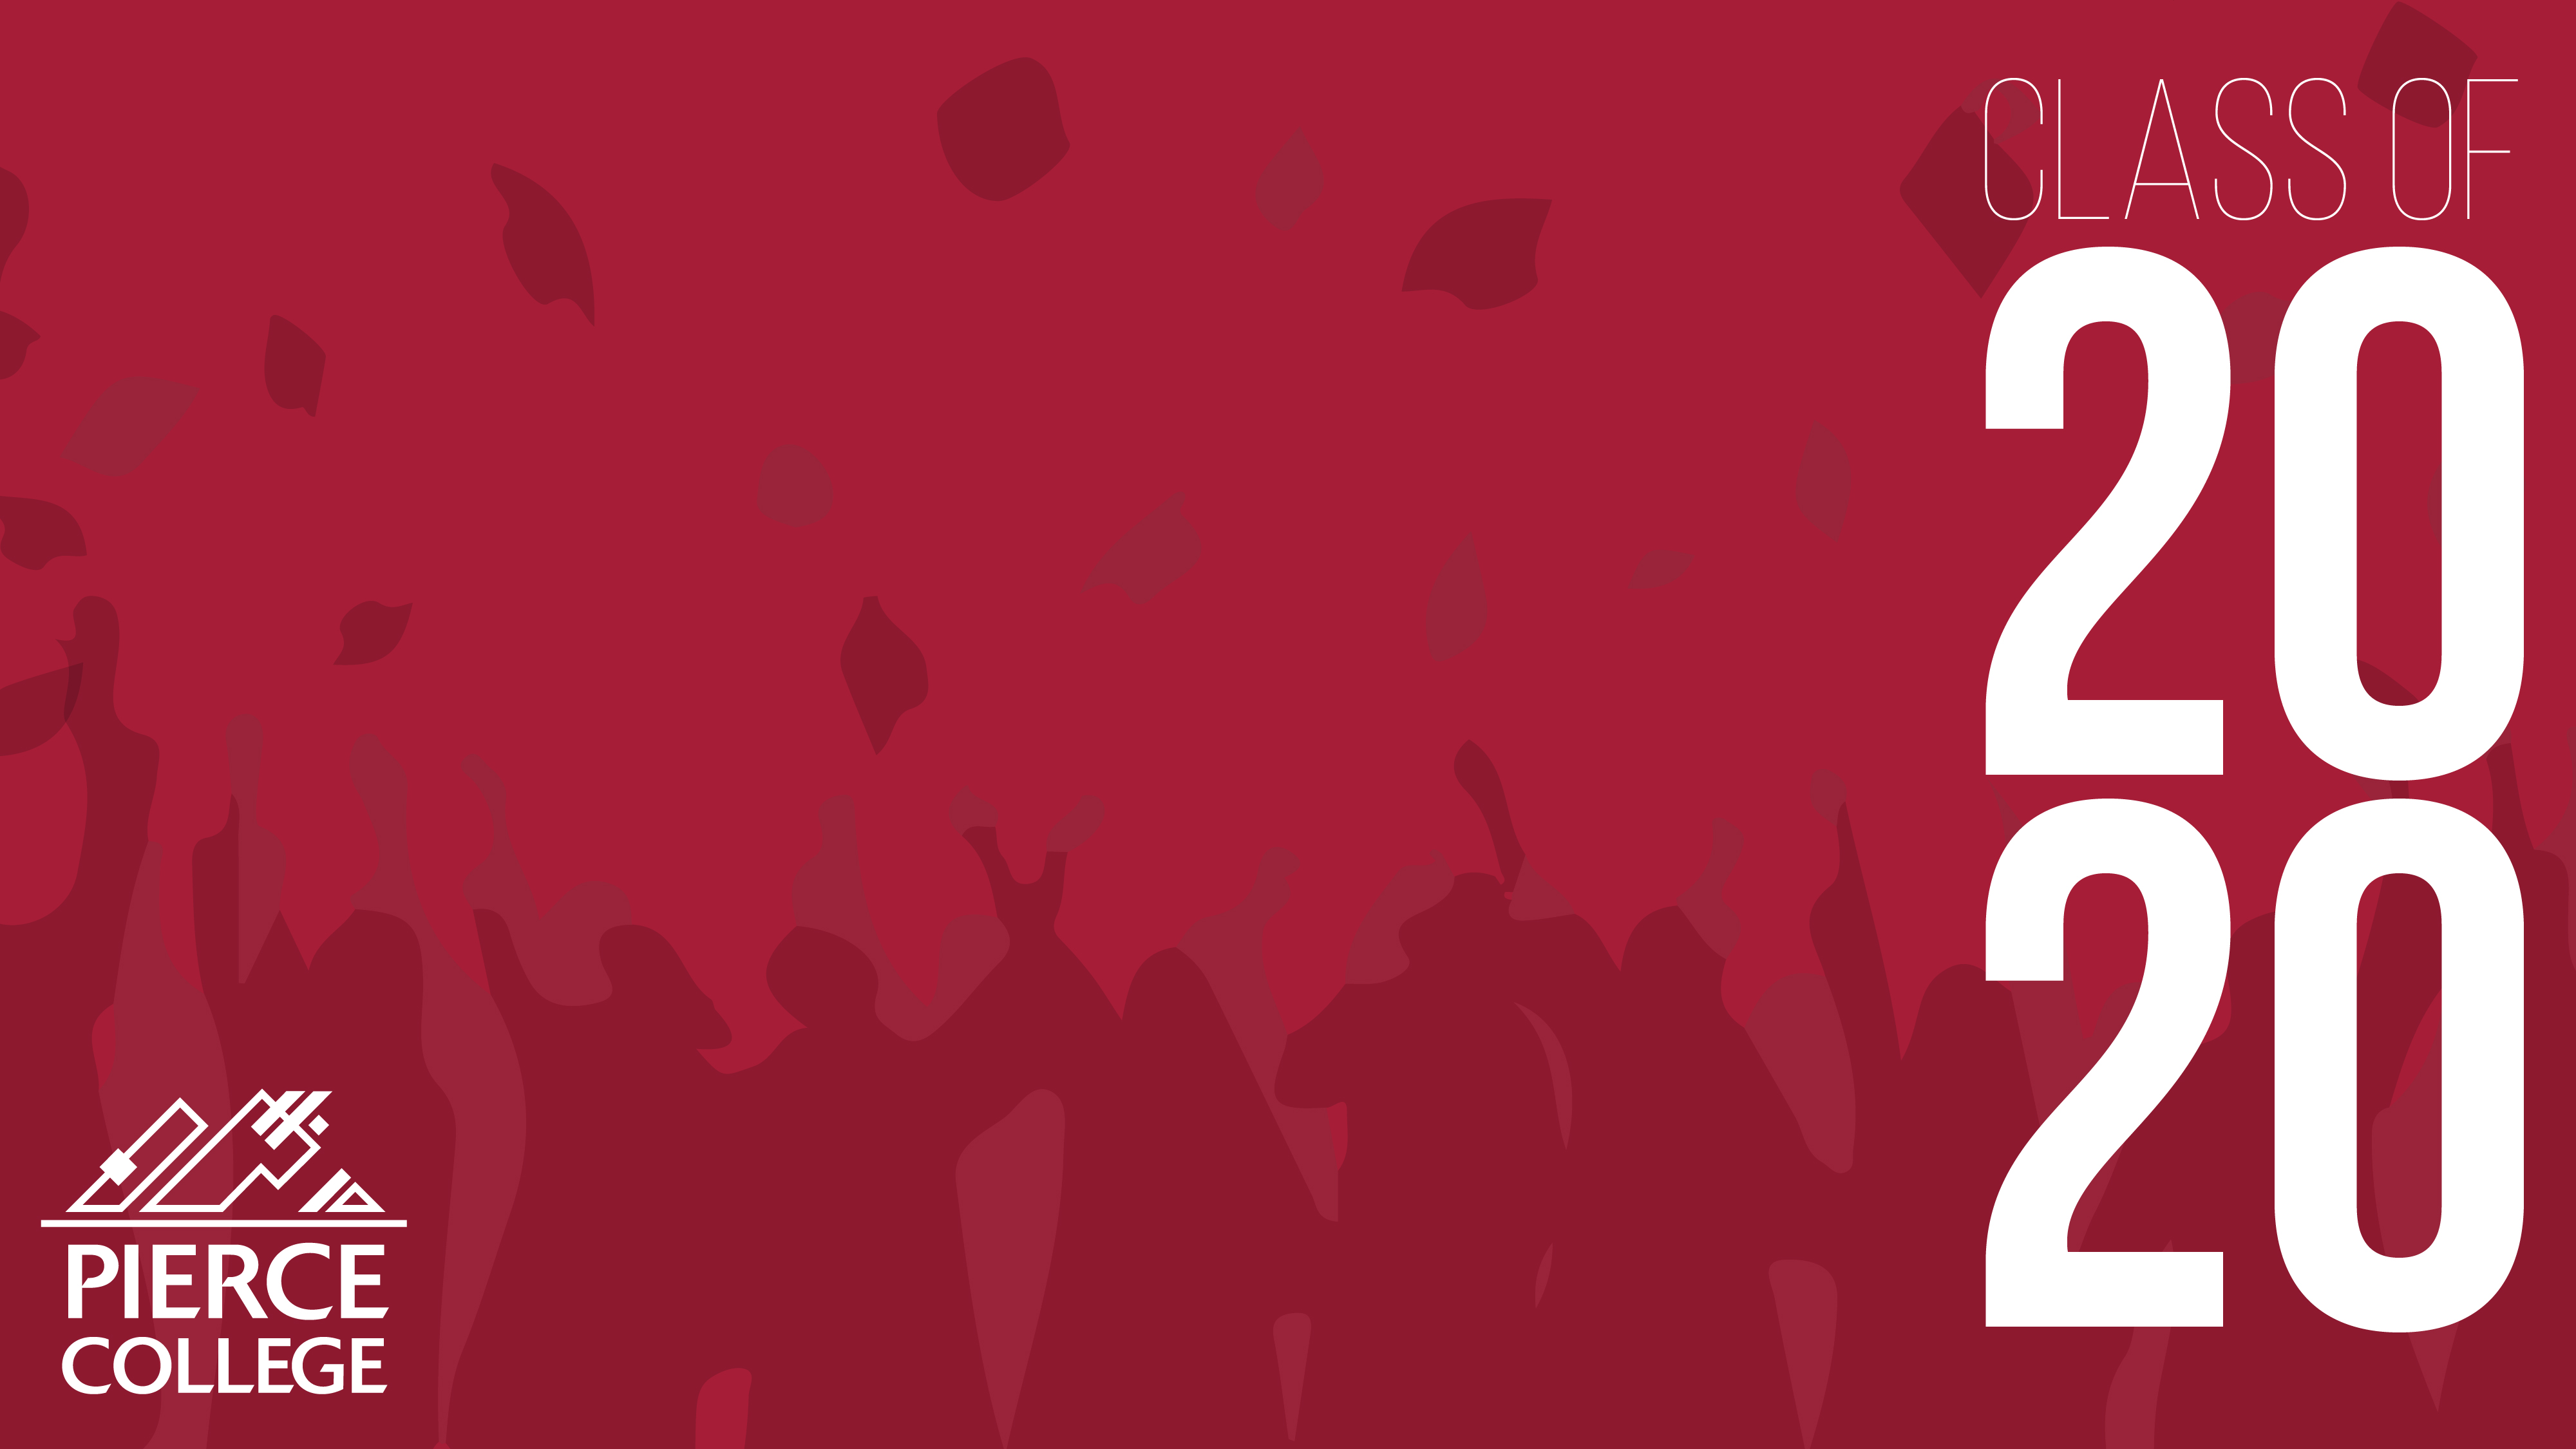 Illustration of graduates throwing caps in the air